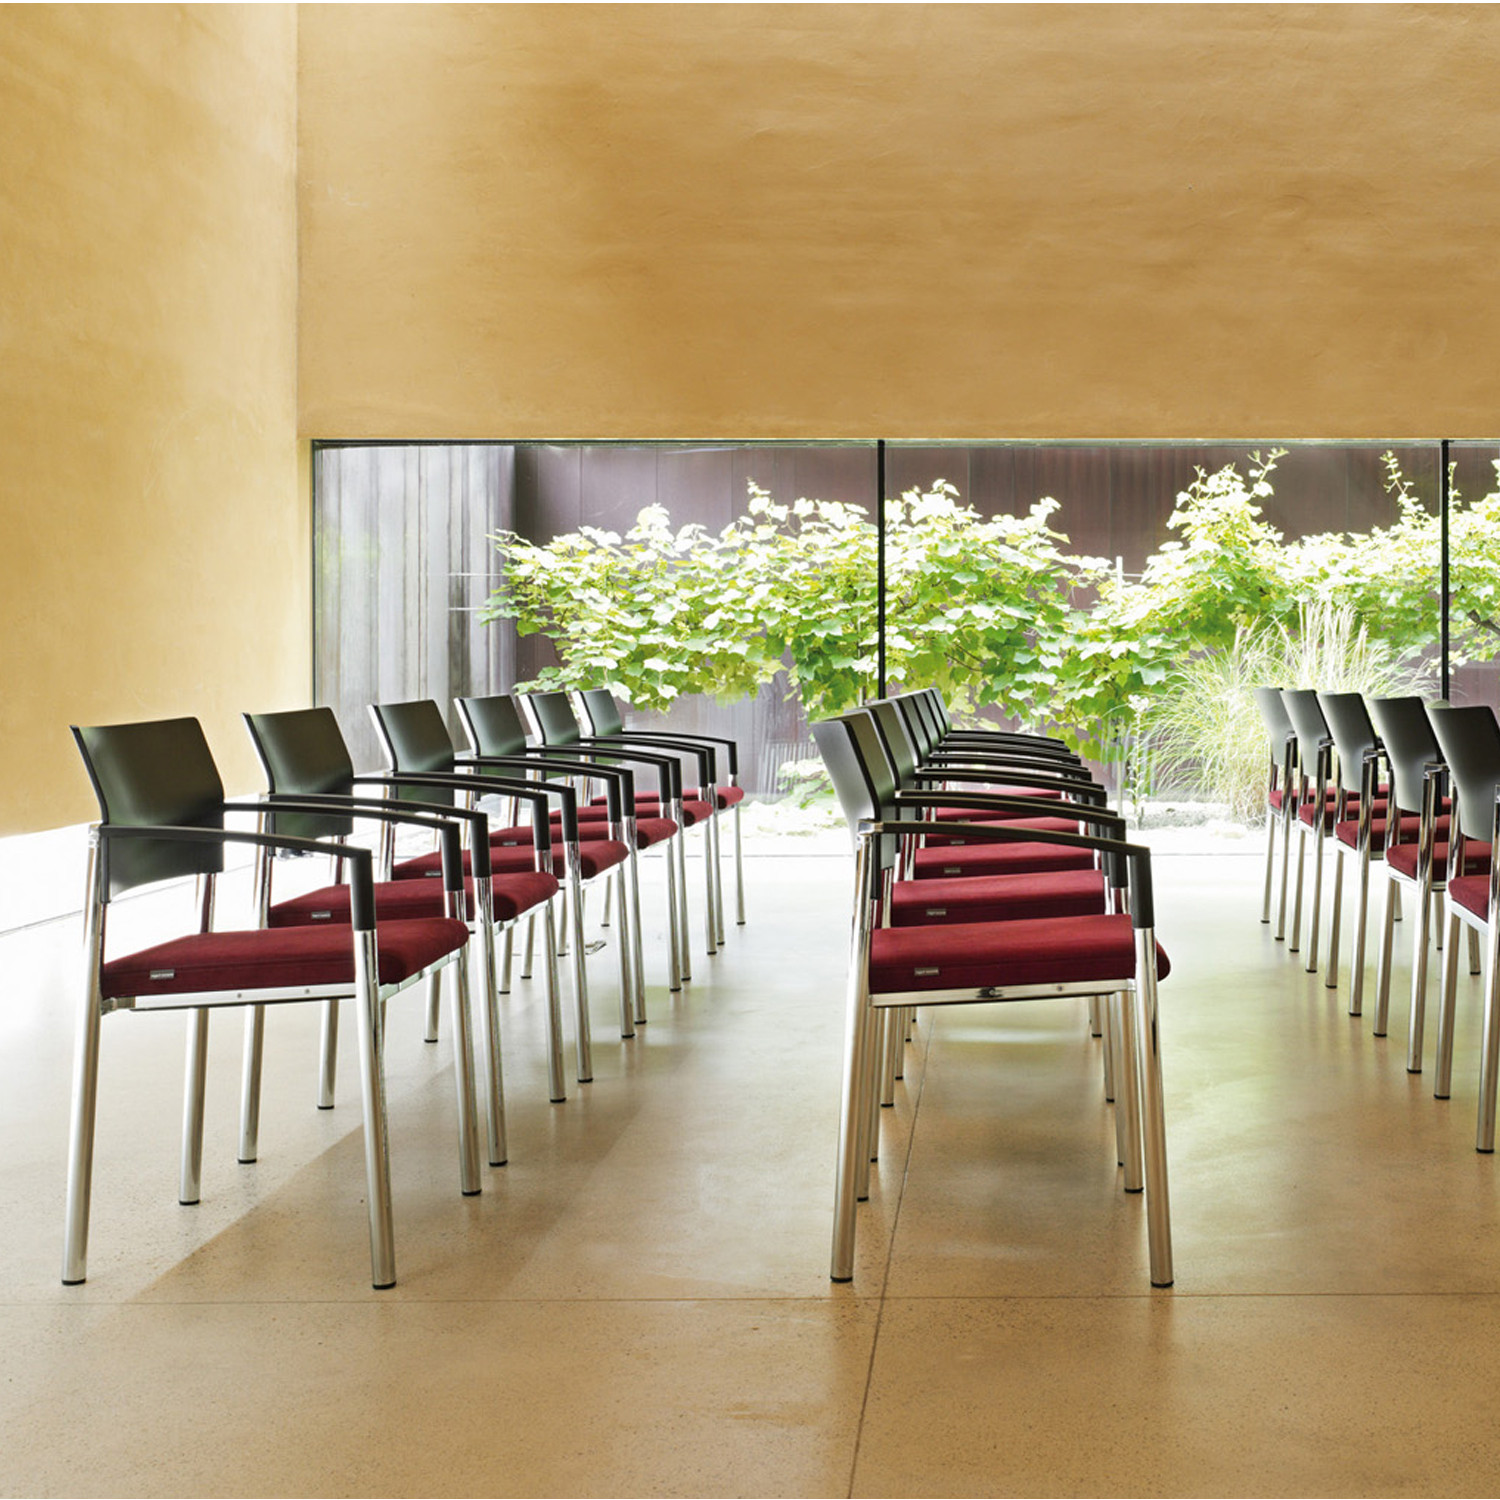 Aluform Chair Rows